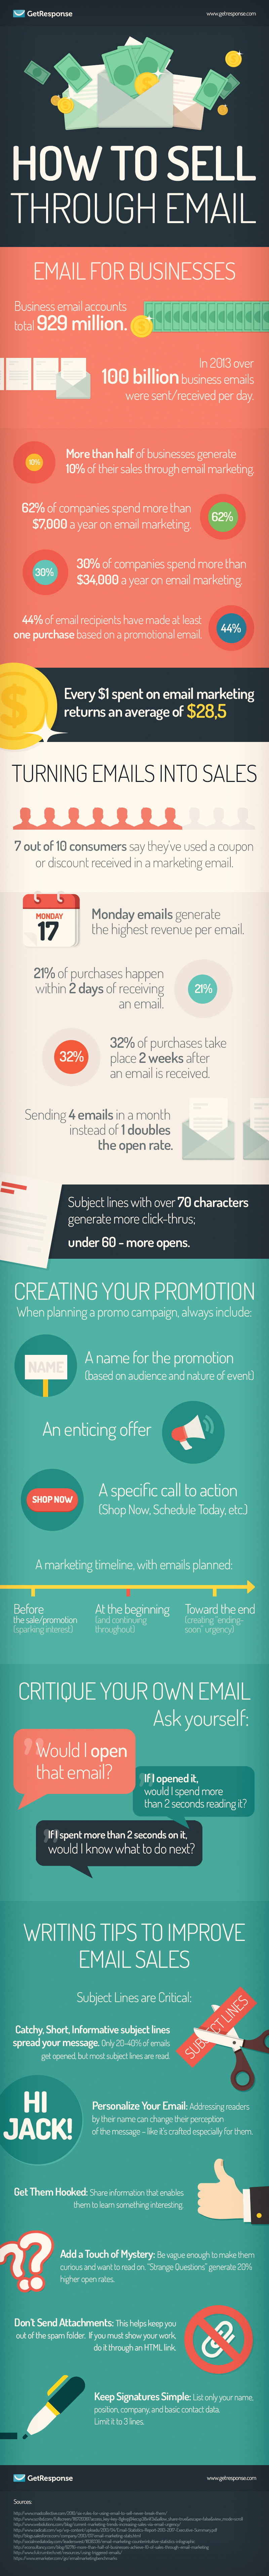 how to sell through email_infographic